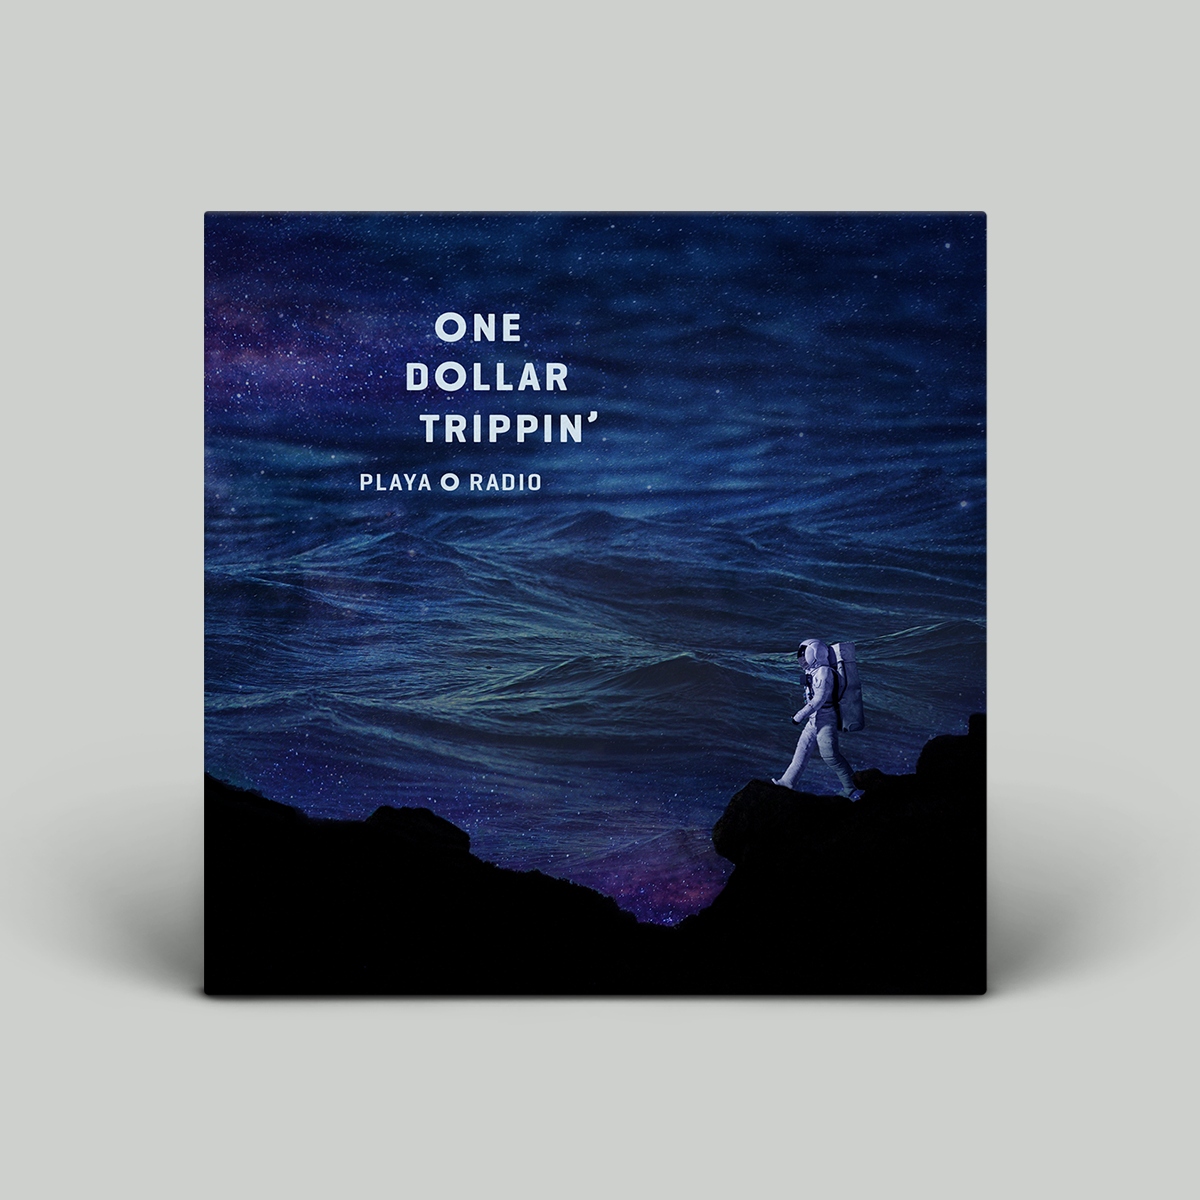 Second EP: One Dollar Trippin